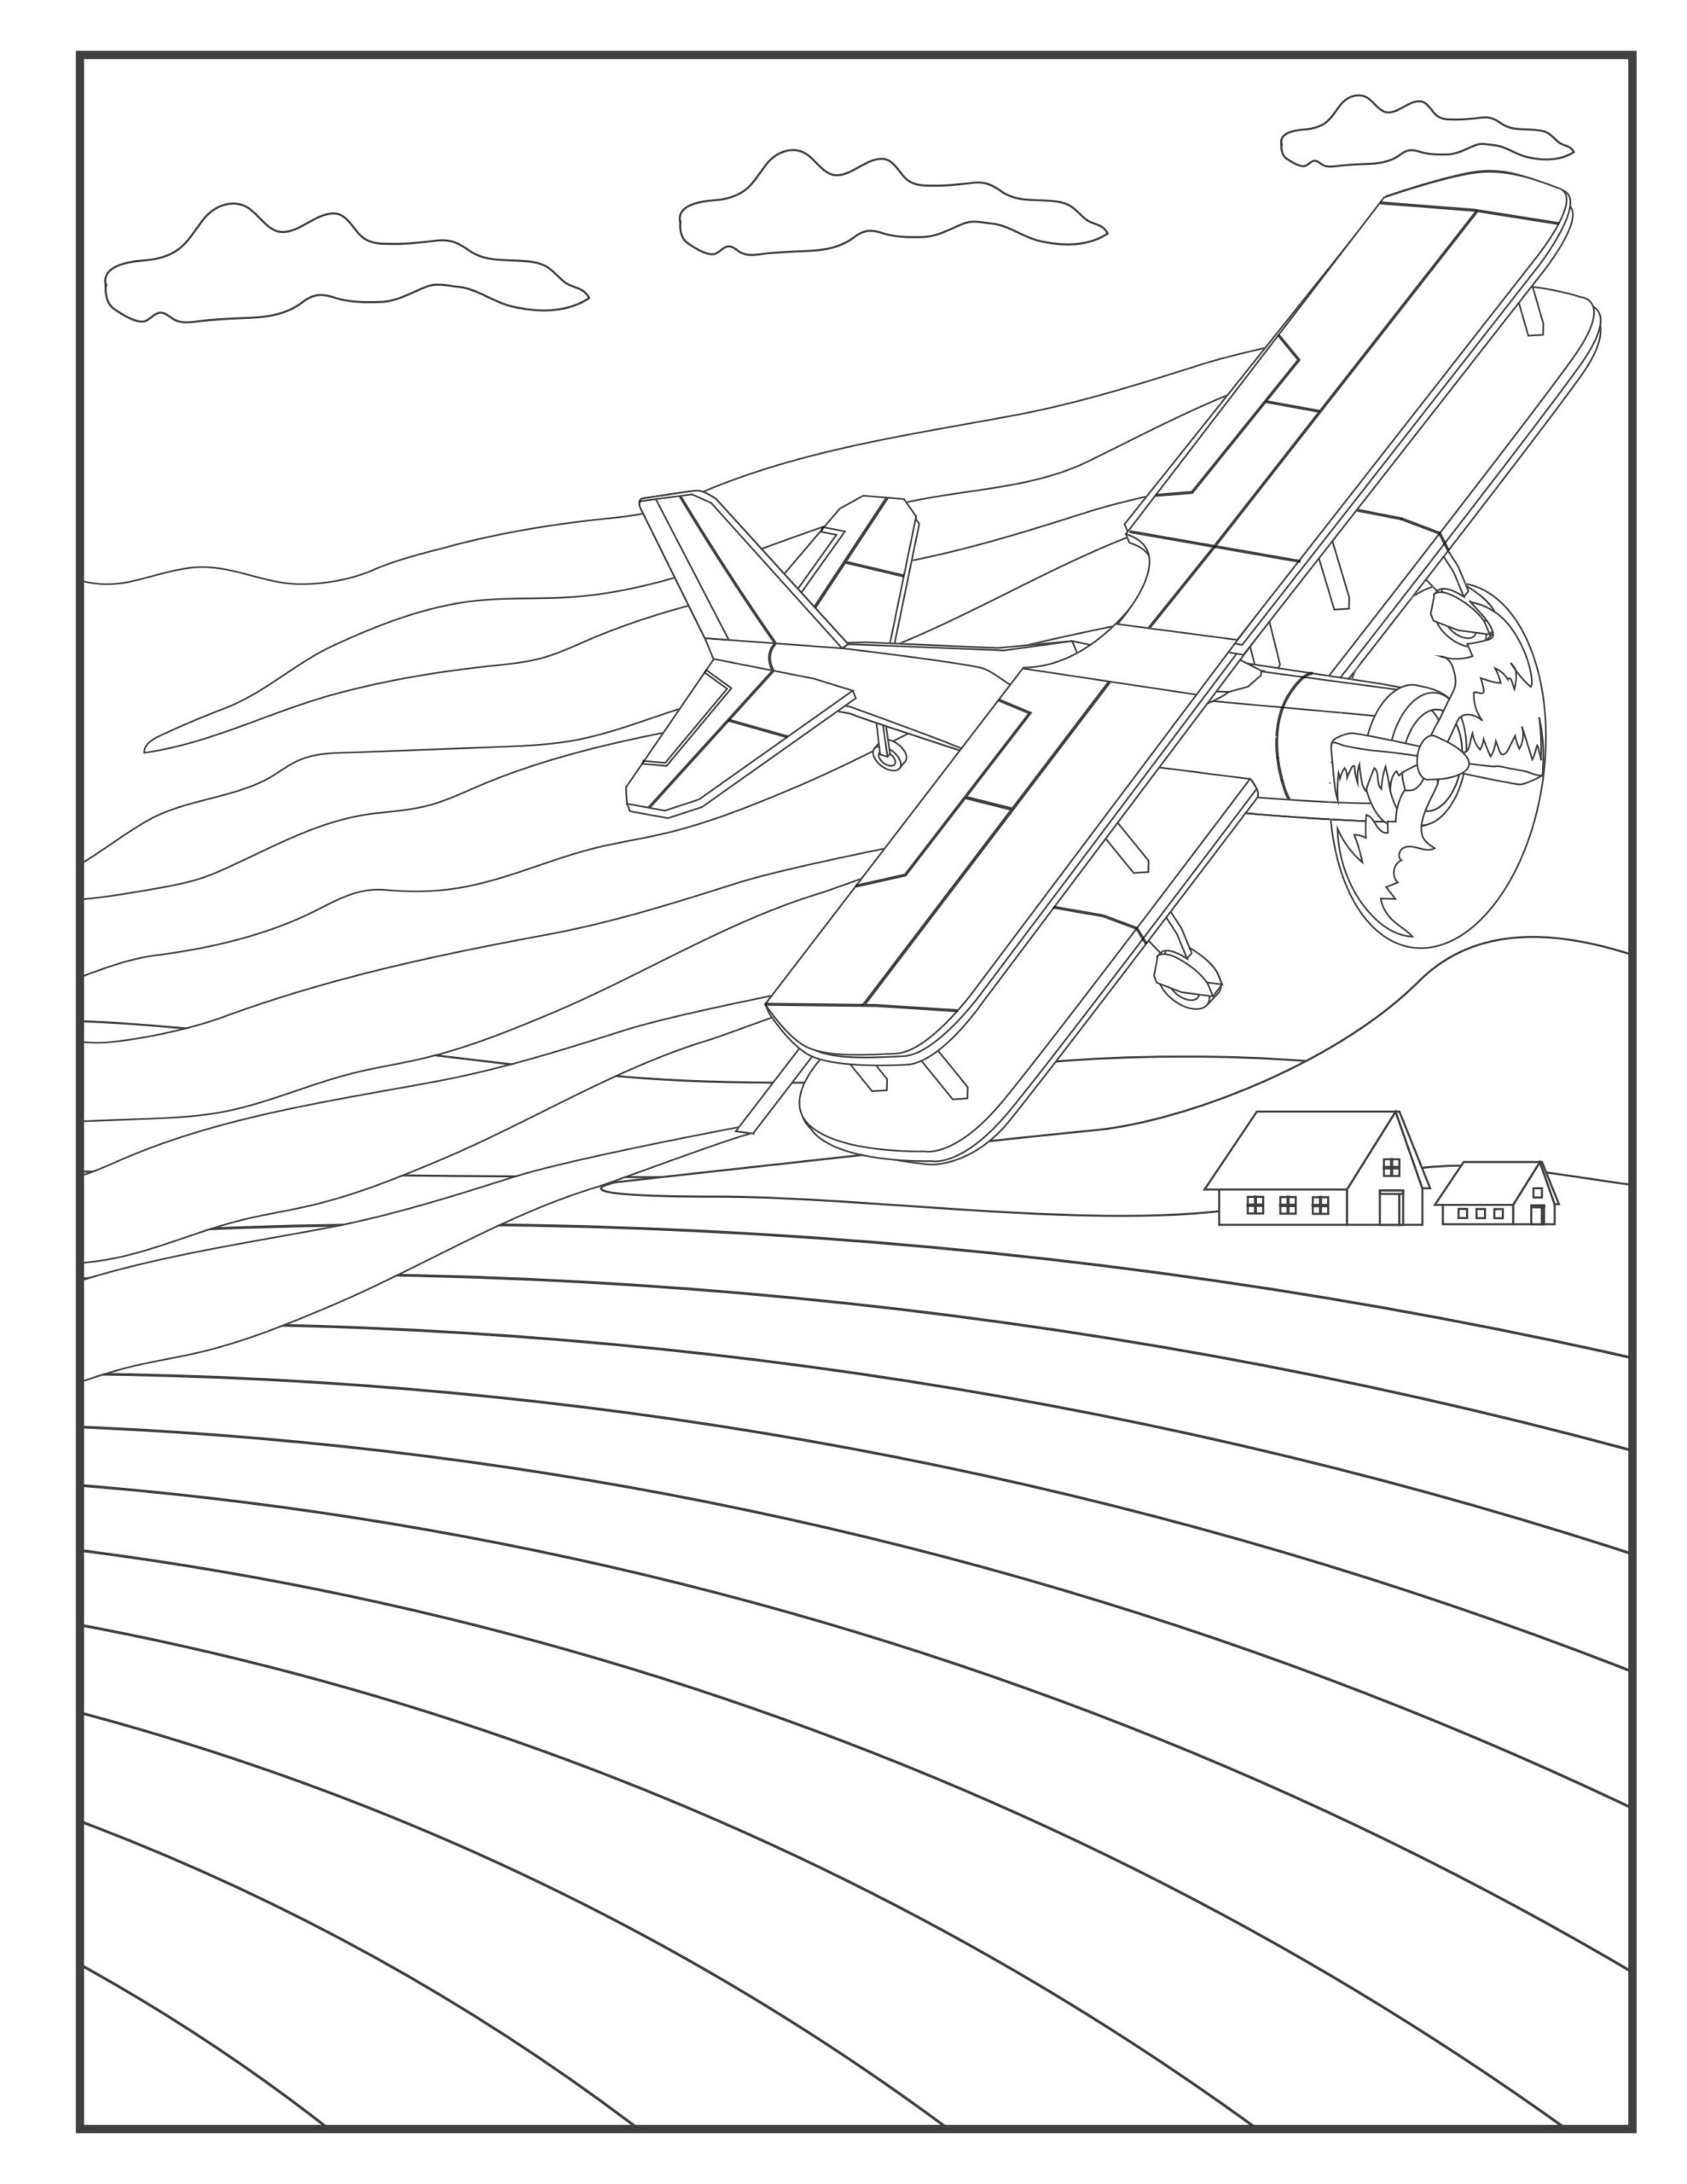 Printable Airplane Coloring Pages For Toddlers Preschool Kindergarten